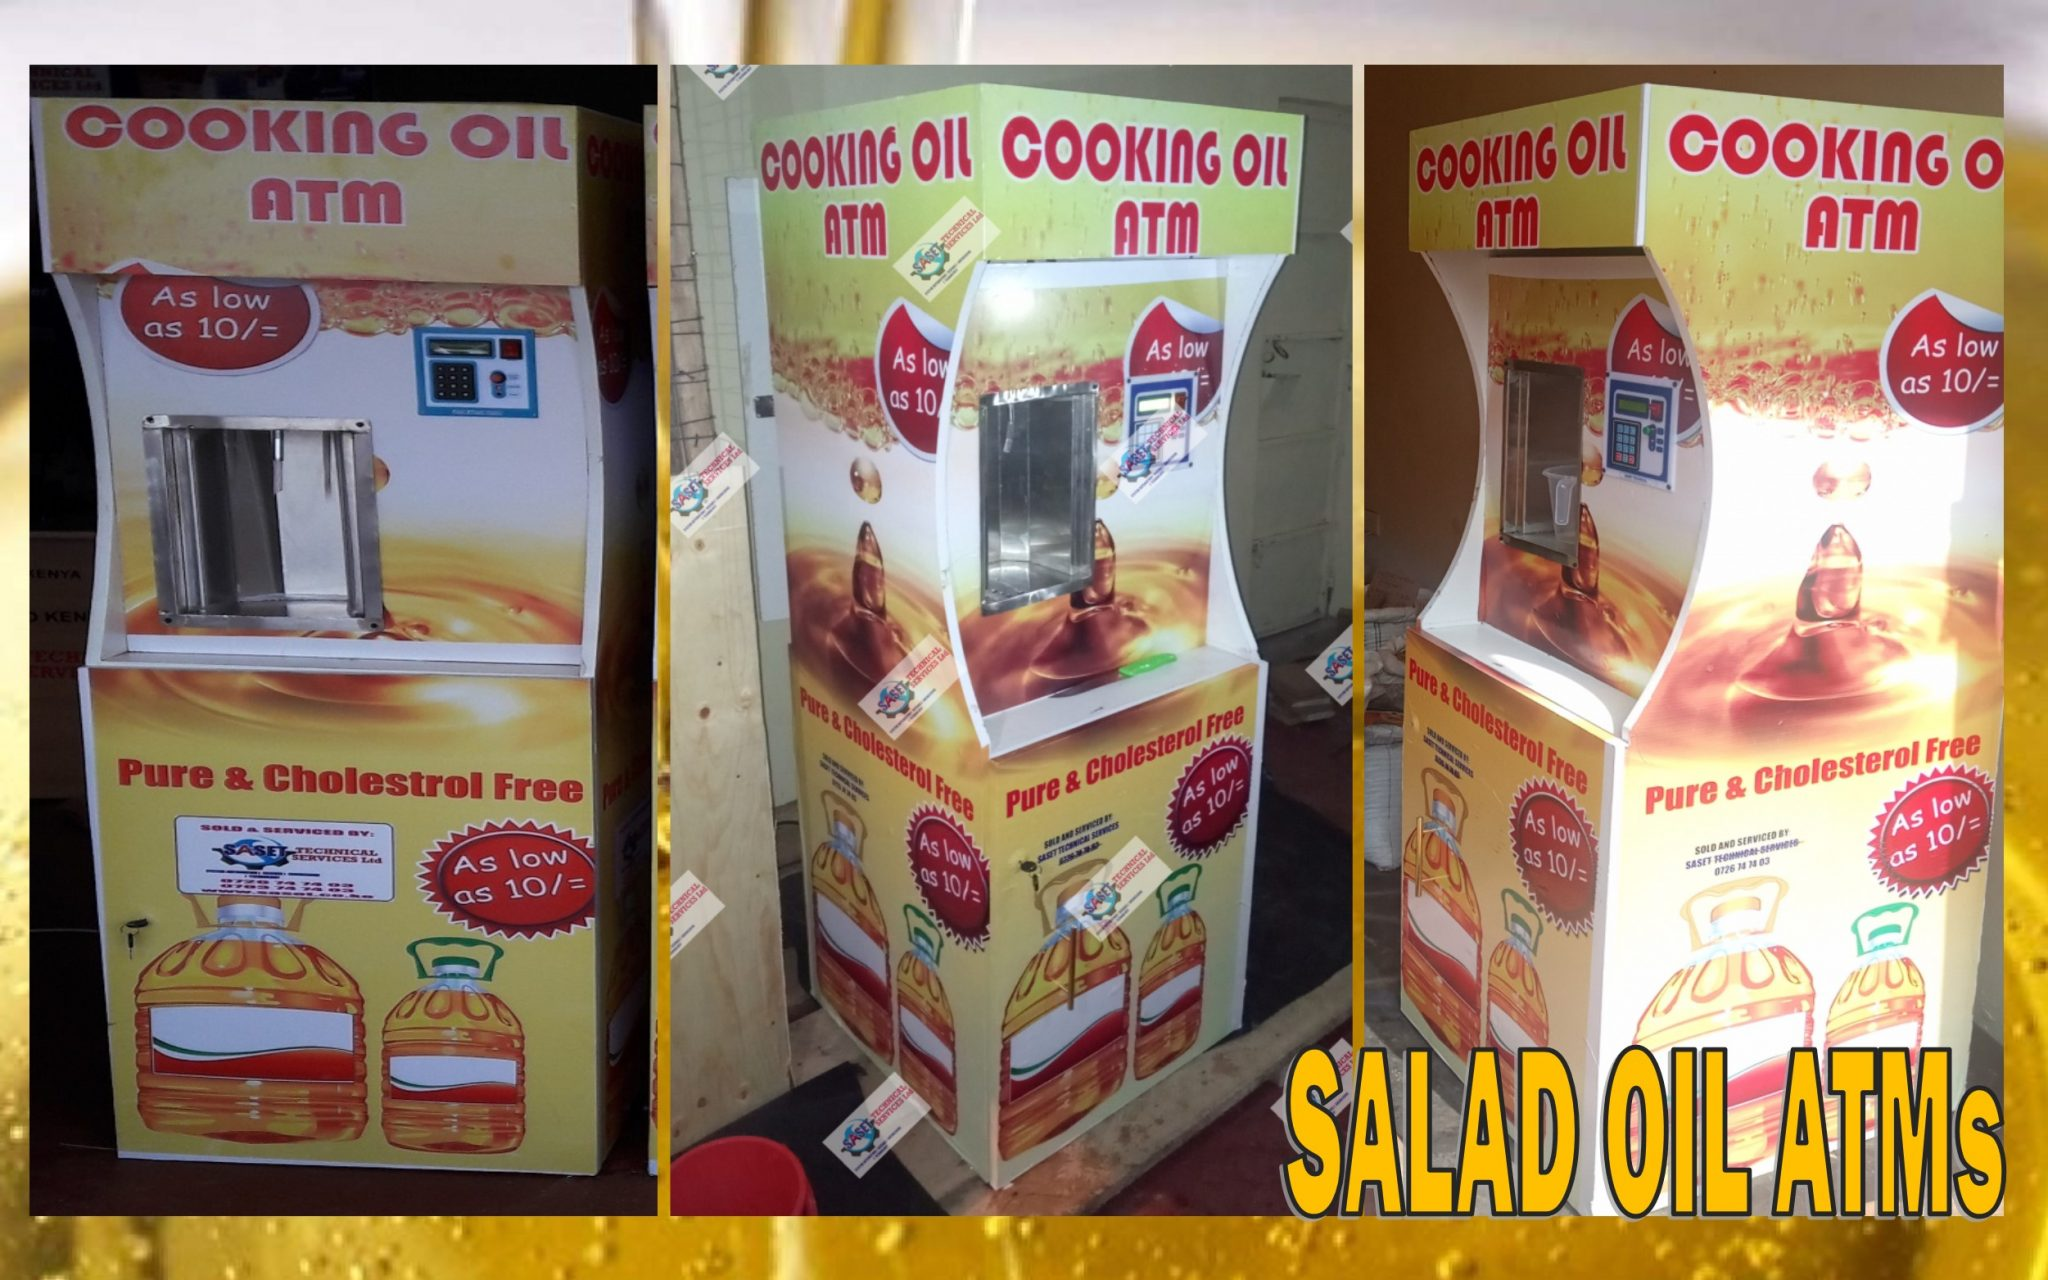 Salad Oil ATMs